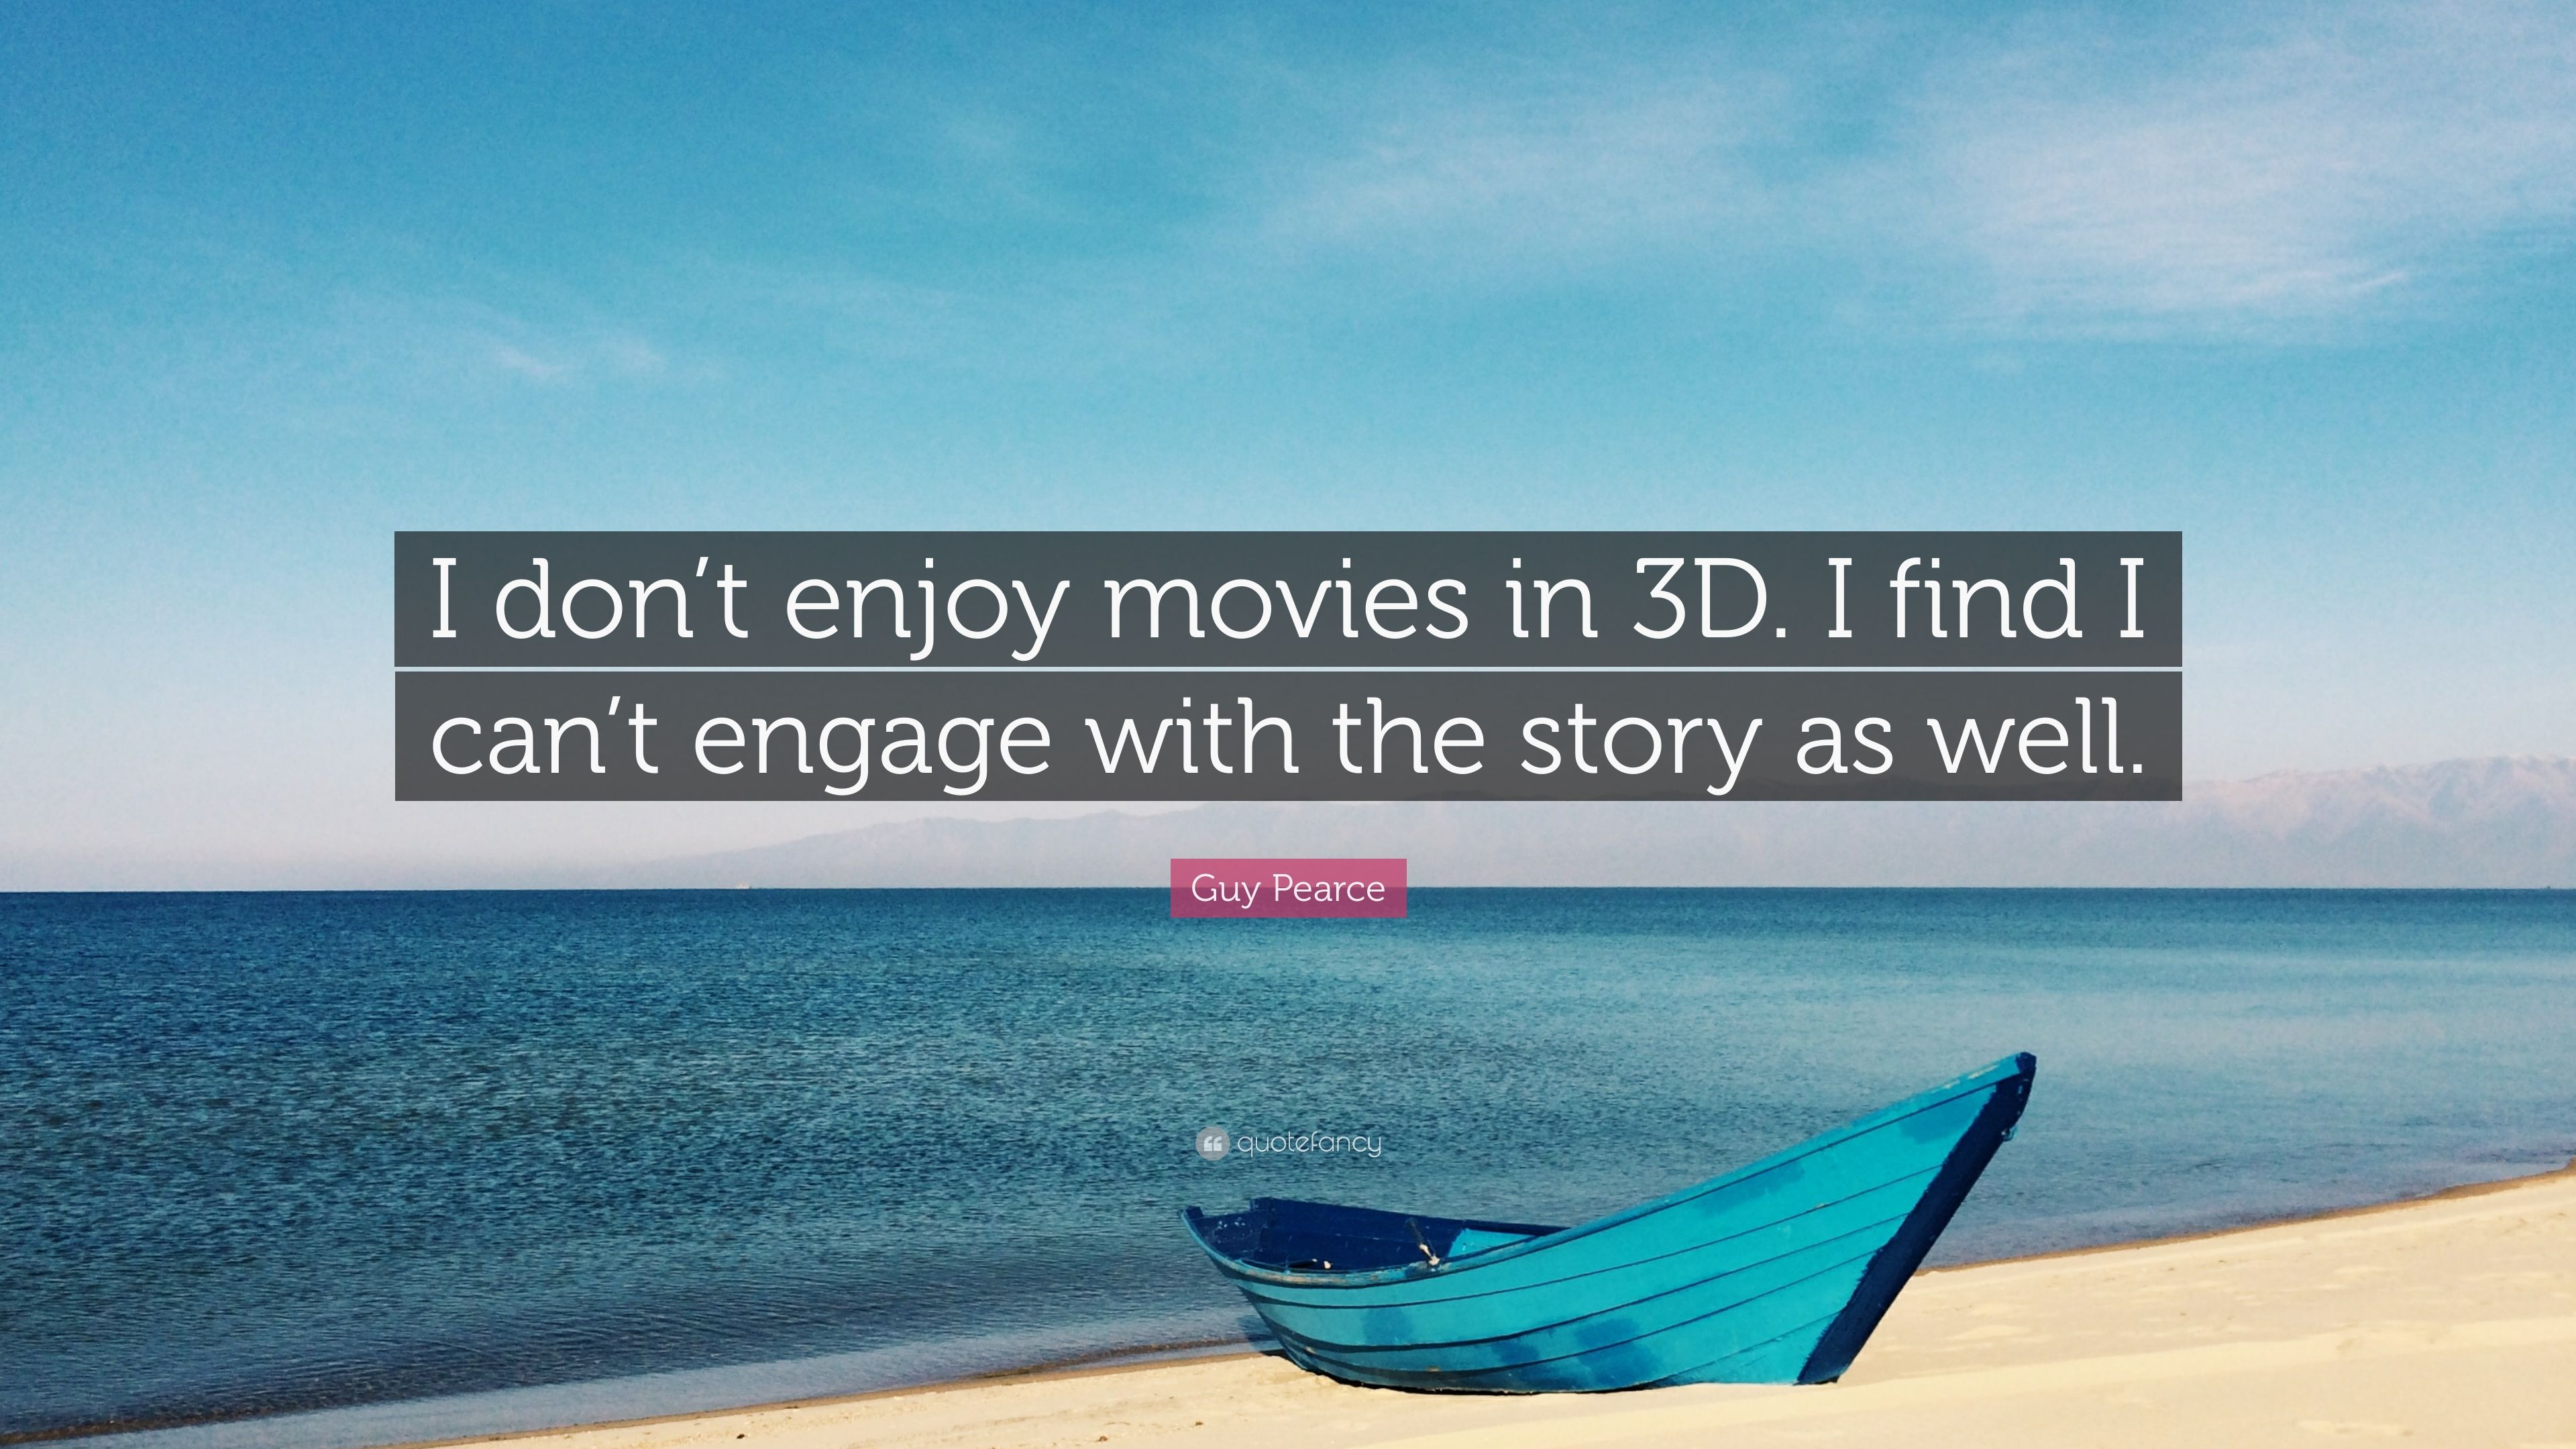 Guy Pearce Quote: U201cI Donu0027t Enjoy Movies In 3D. I Find